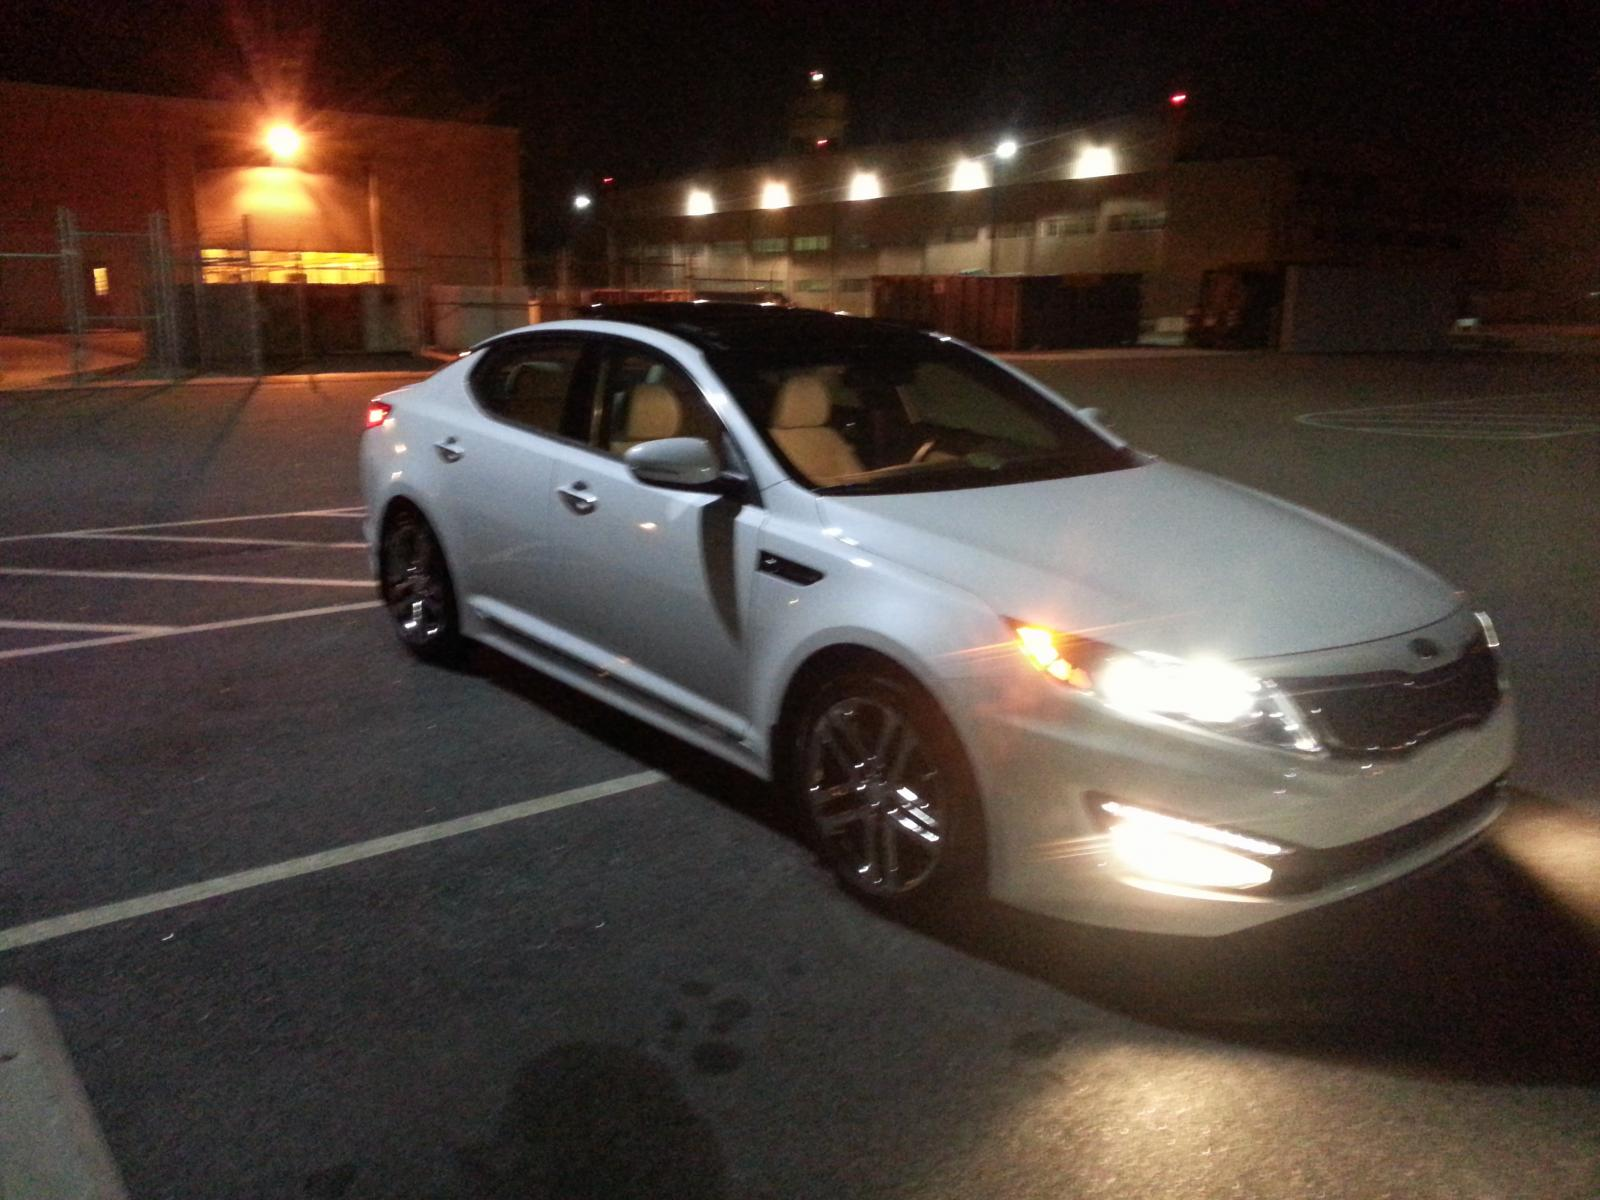 NEWEST MEMBER TO THE KIA FAMILY! 2013 KIA OPTIMA SXL!!!! SWEEEEET RIIIIDE.... lol-20130804_214724.jpg